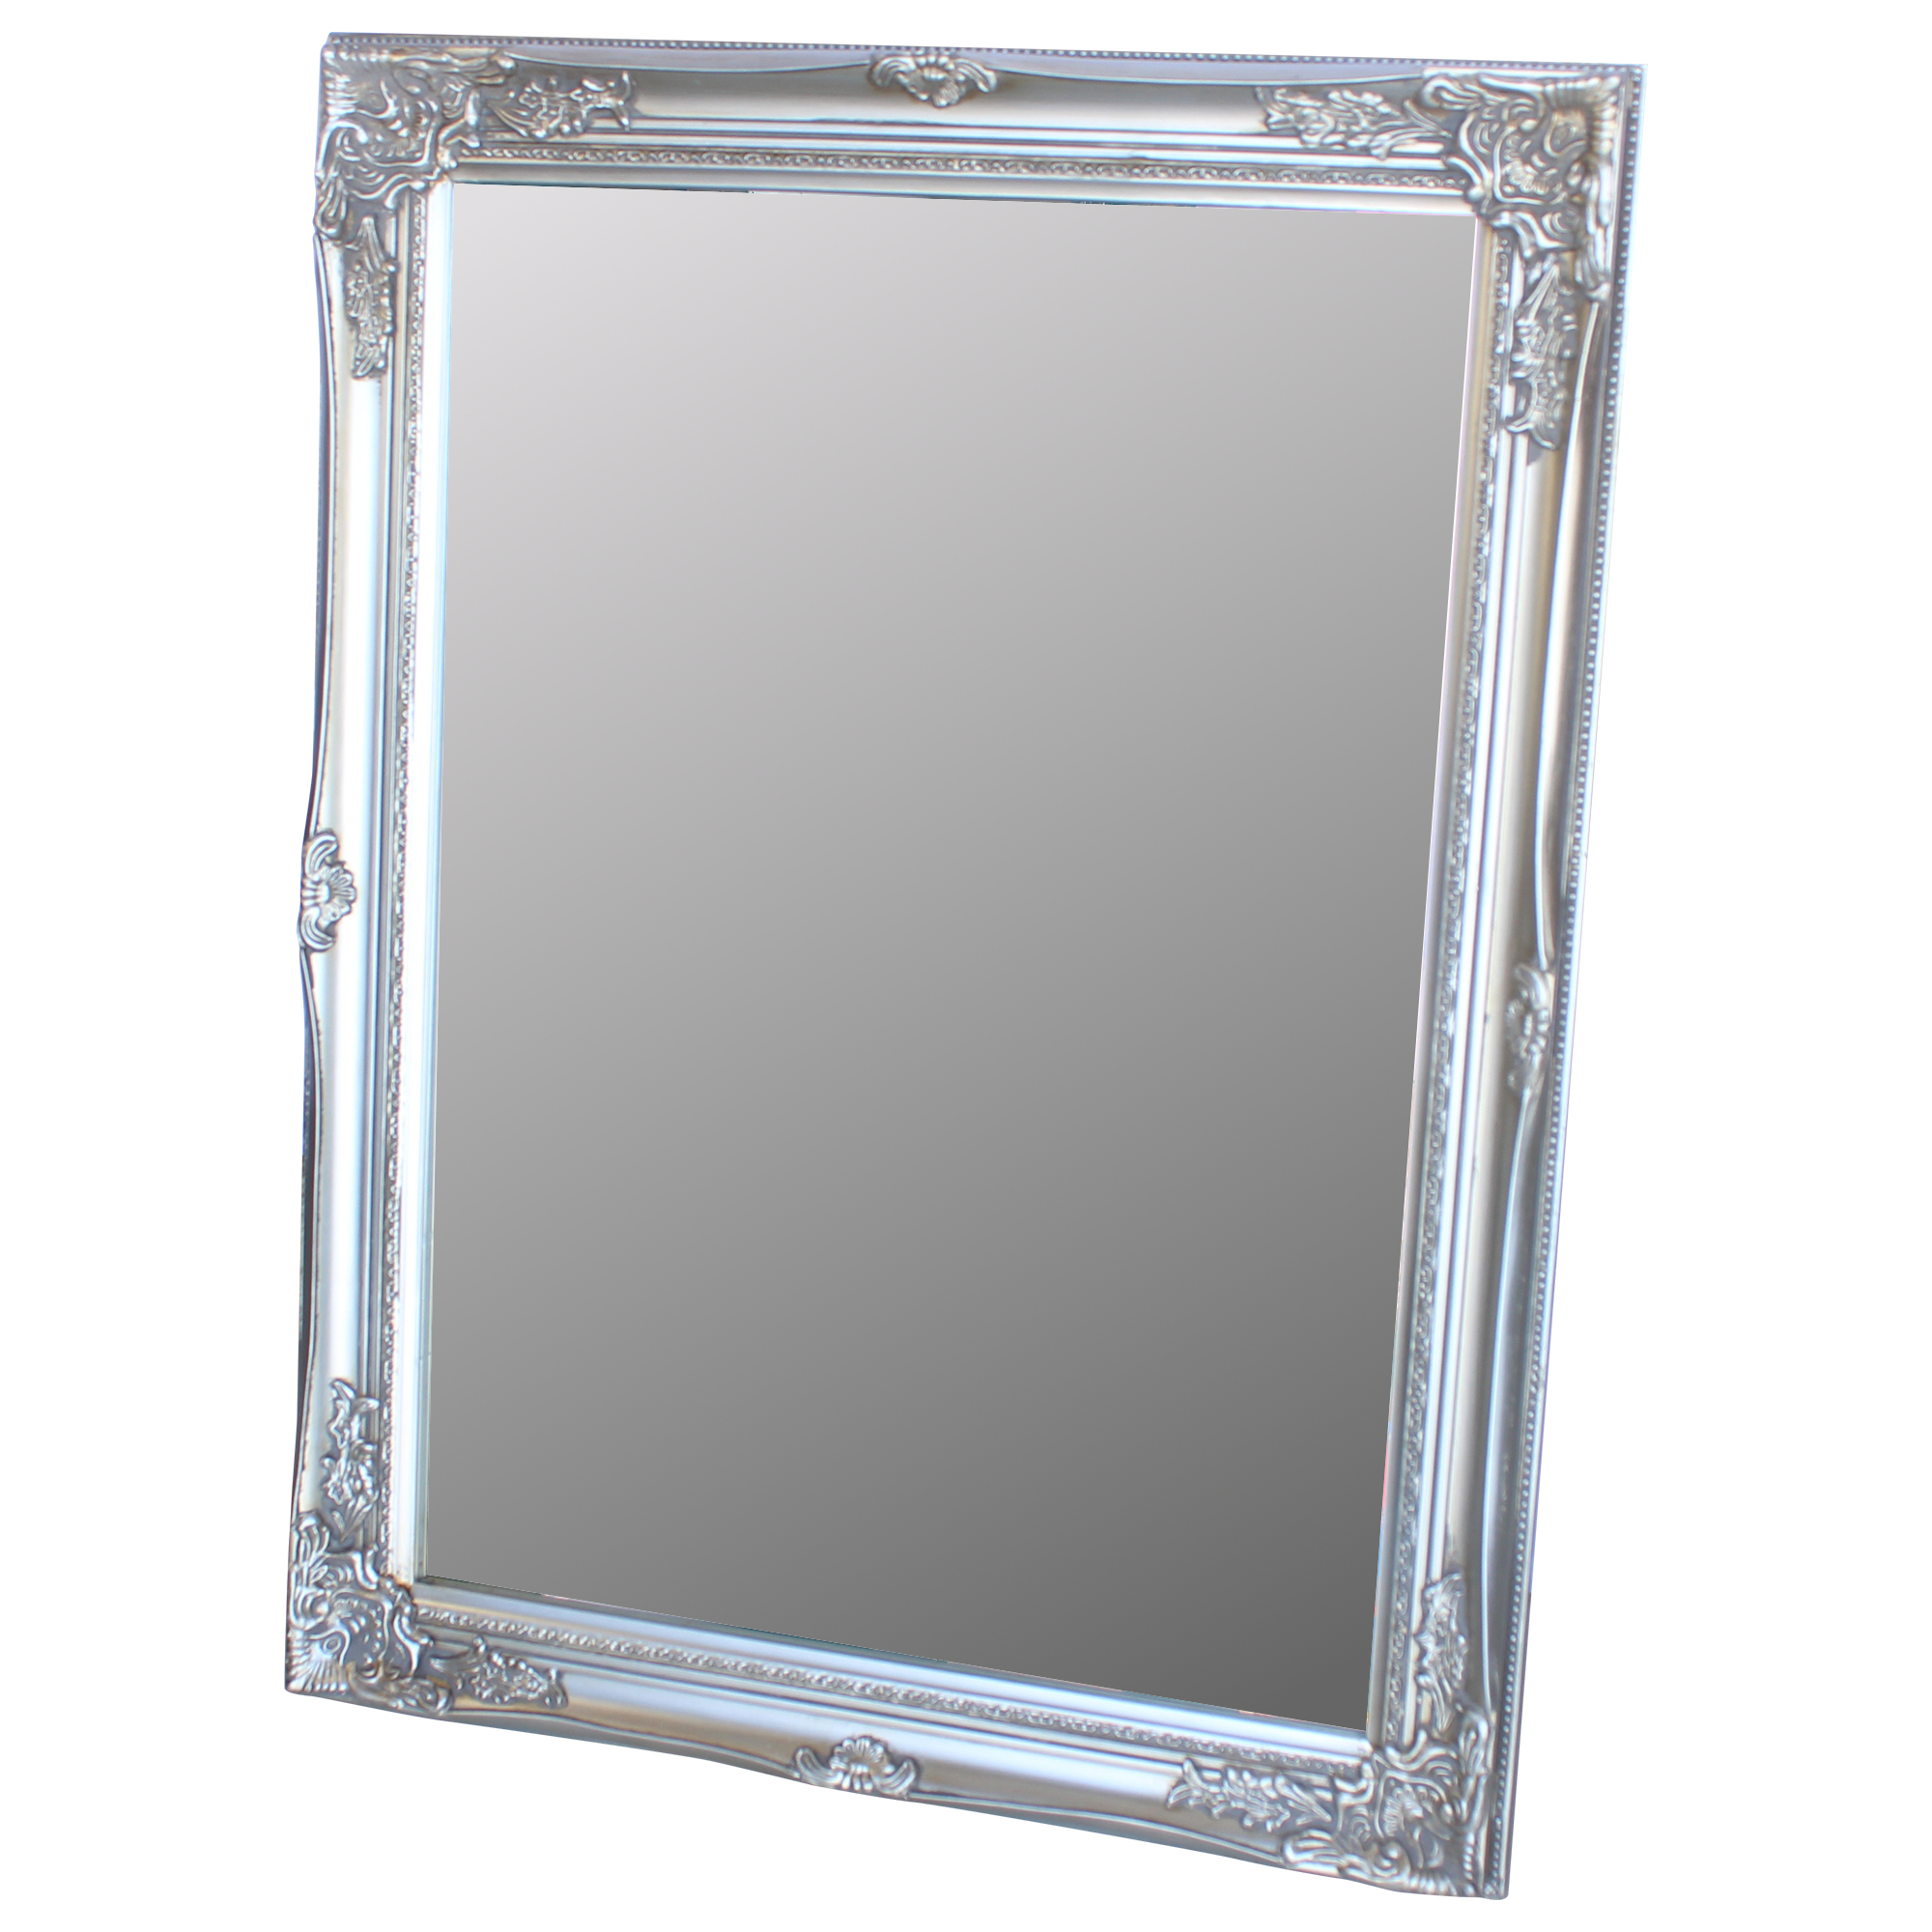 Large silver ornate shabby vintage chic wall mirror 62cm x for Large silver wall mirror